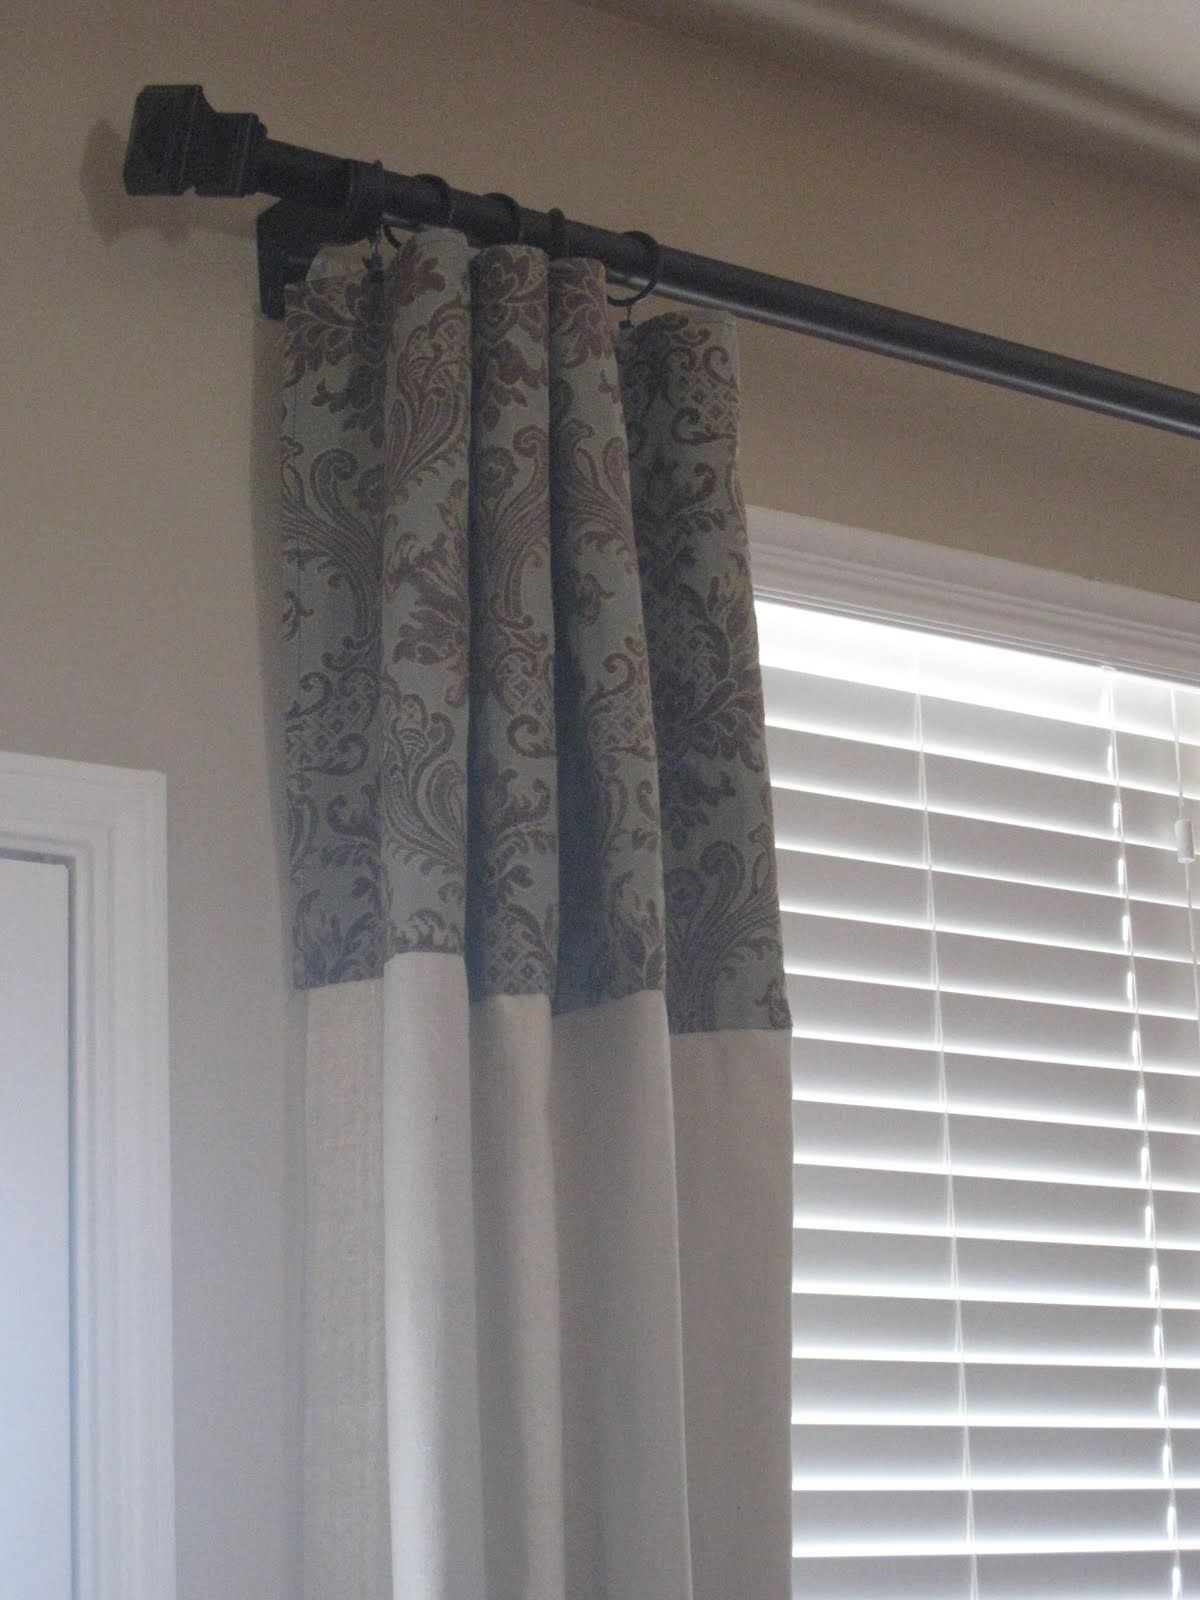 Drop Cloth Curtains Lowes Rod Drop Loth Lowes Fabric Hobby Lobby Window Coverings